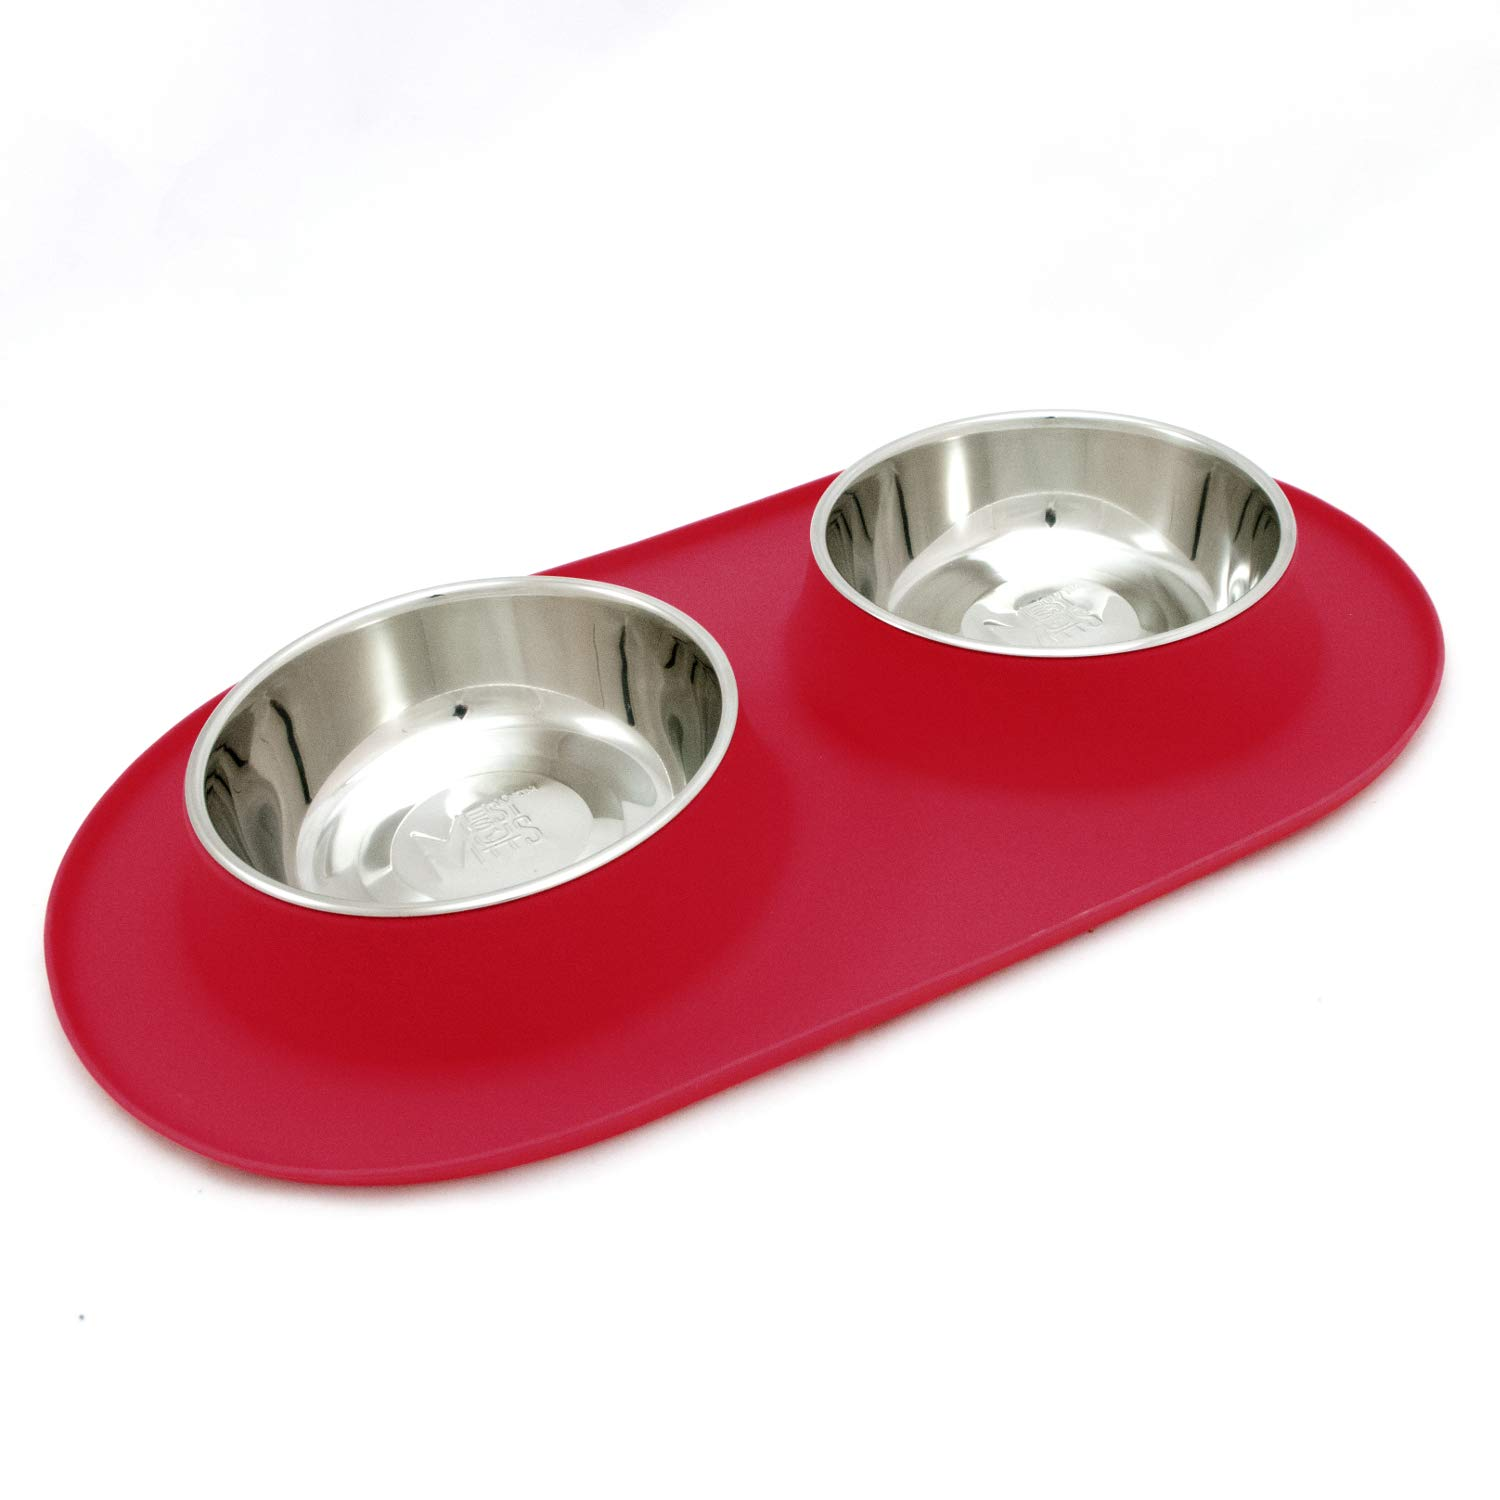 (Large   3 Cups Per Bowl, Watermelon) Messy Mutts Stainless Steel Double Dog Feeder with Non-Slip Silicone Base